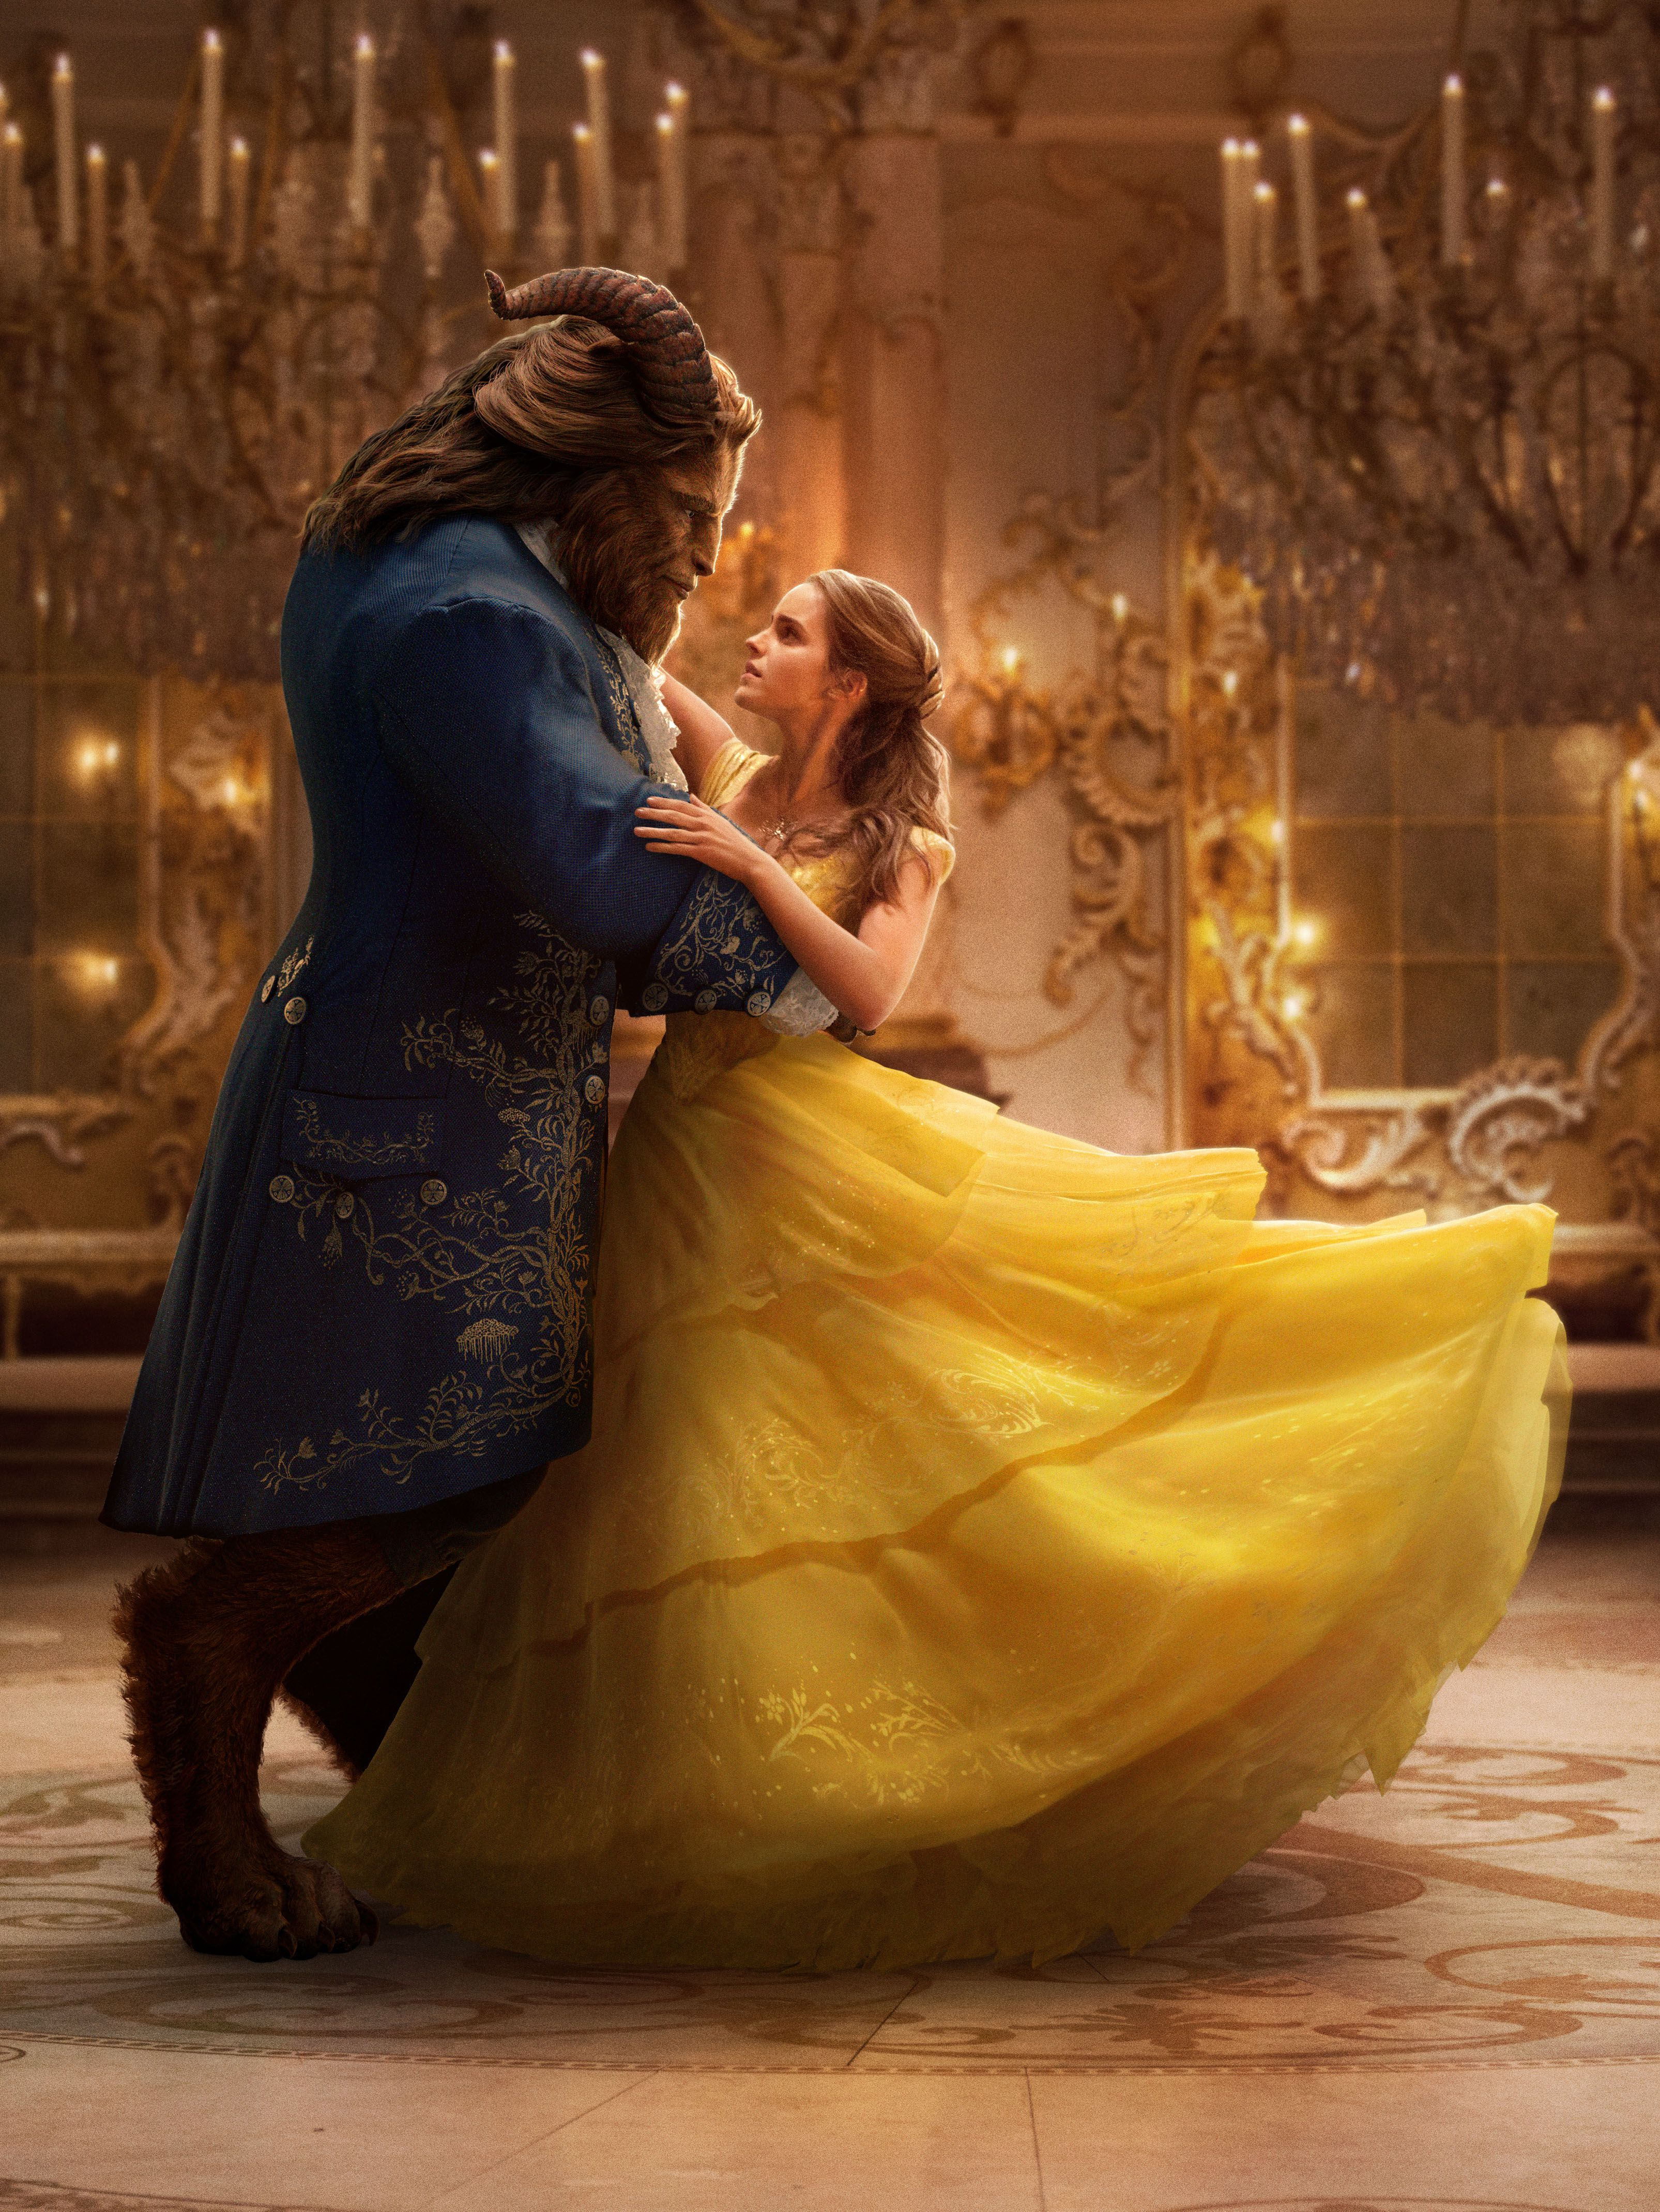 Beauty And The Beast Live-Action Images Of Emma Watson